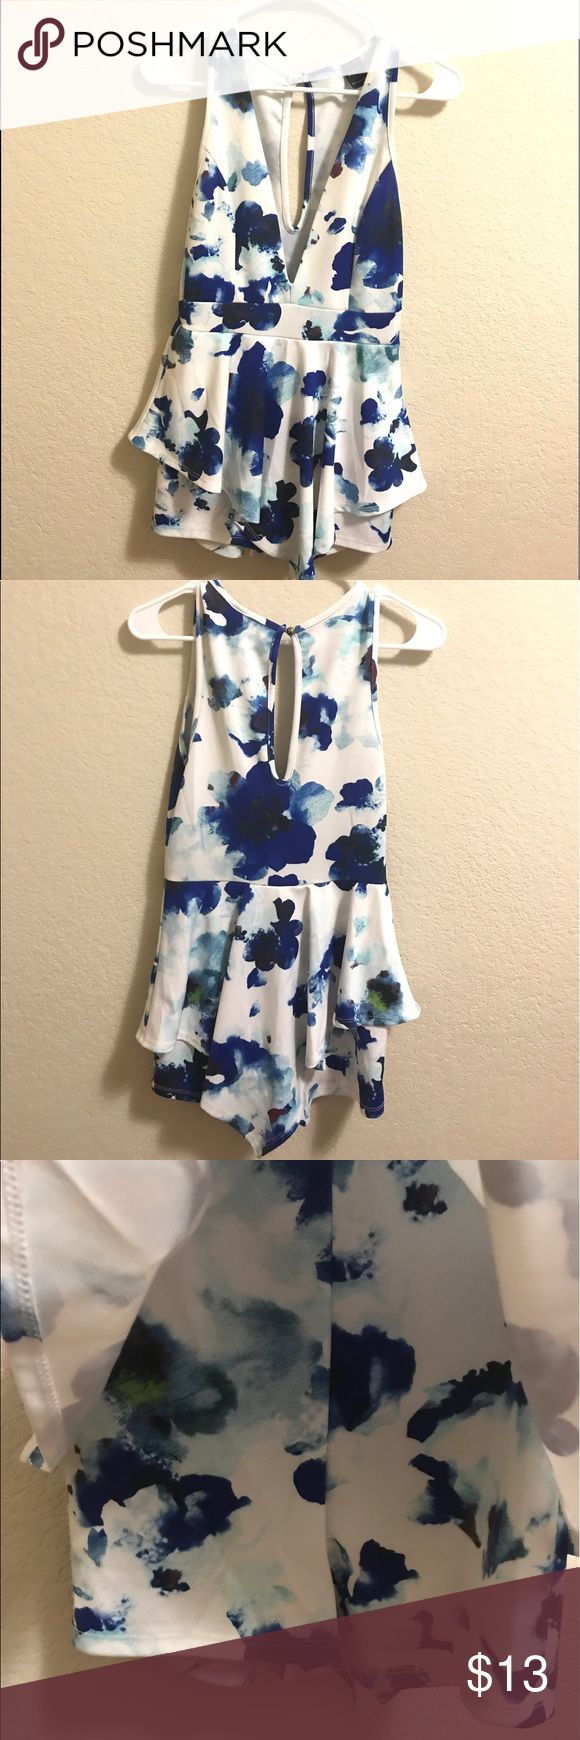 "Blue and white polyester romper Super cute for going out, is a romper with shorts but the front and back have a ""skirt"" on it making it look like a dress/romper together! Other"